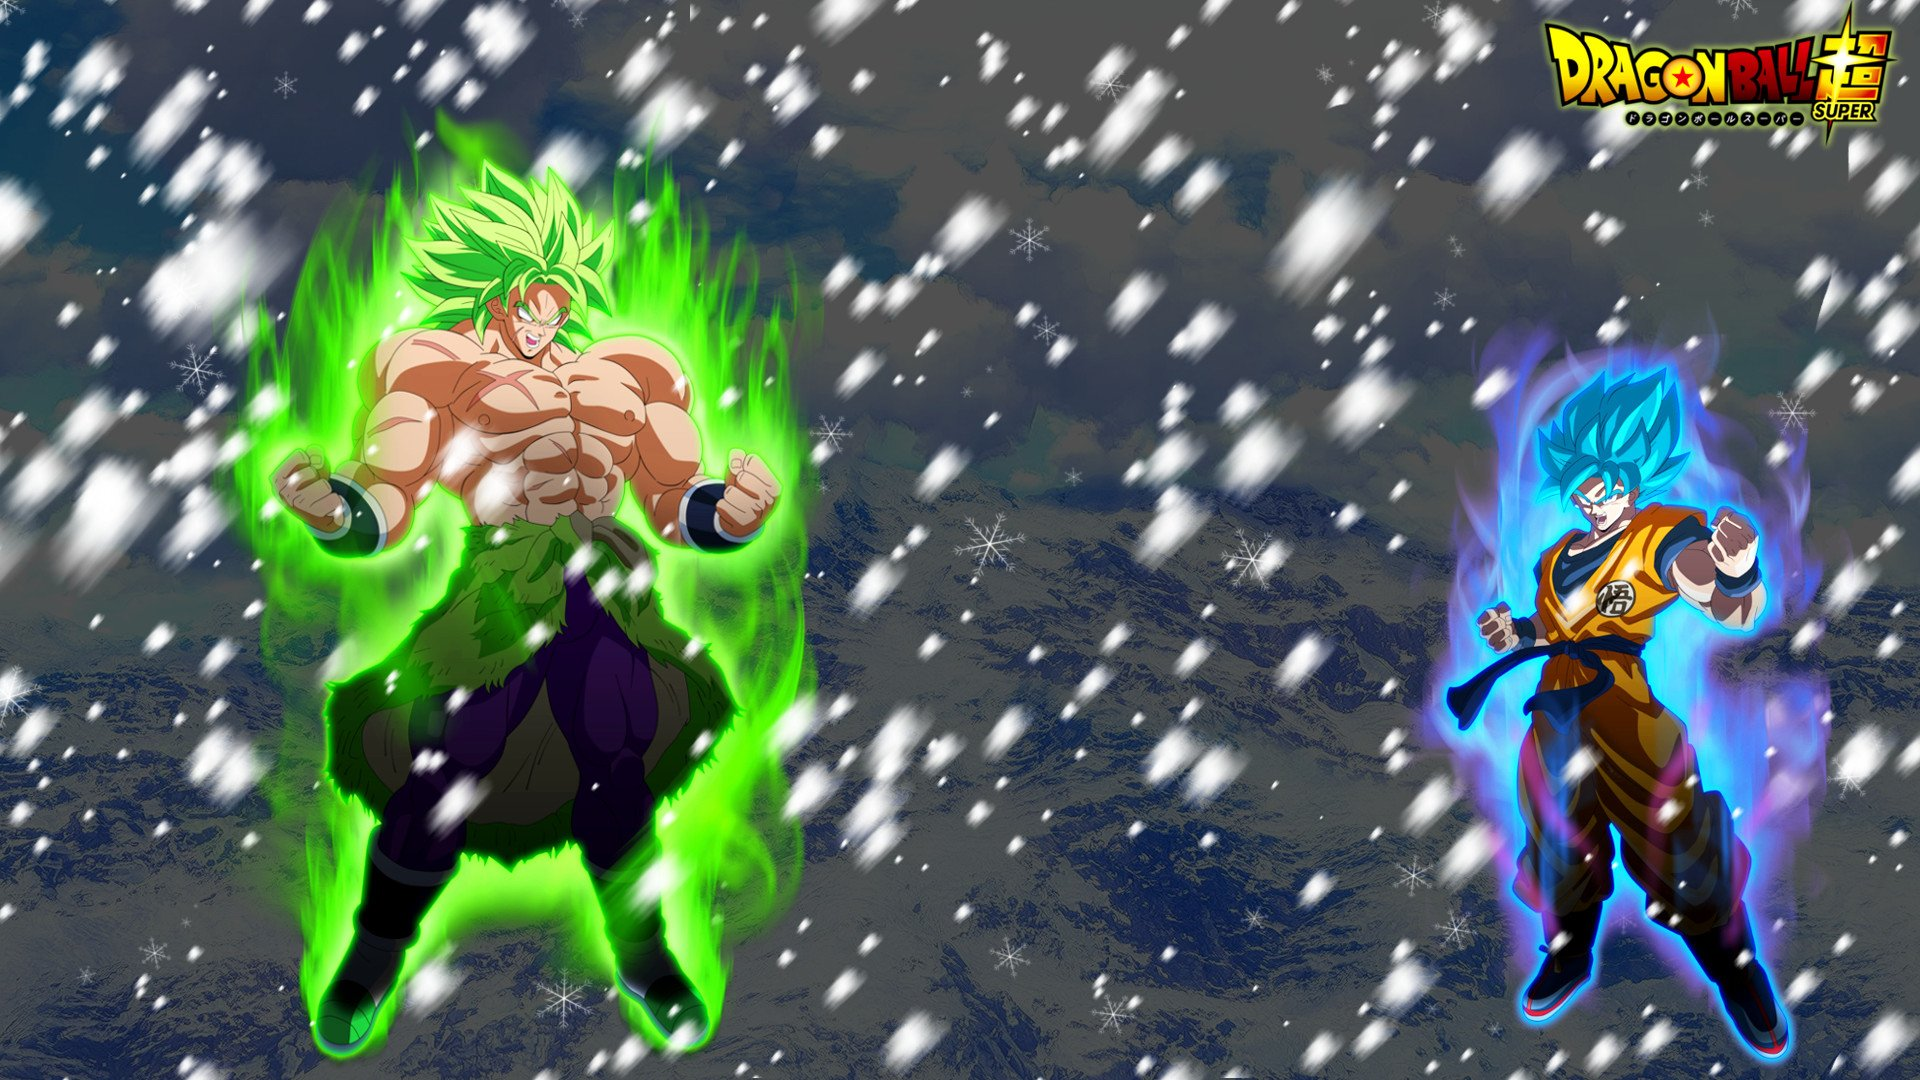 Goku Vs Broly Hd Wallpaper Background Image 1920x1080 Id 1000256 Wallpaper Abyss